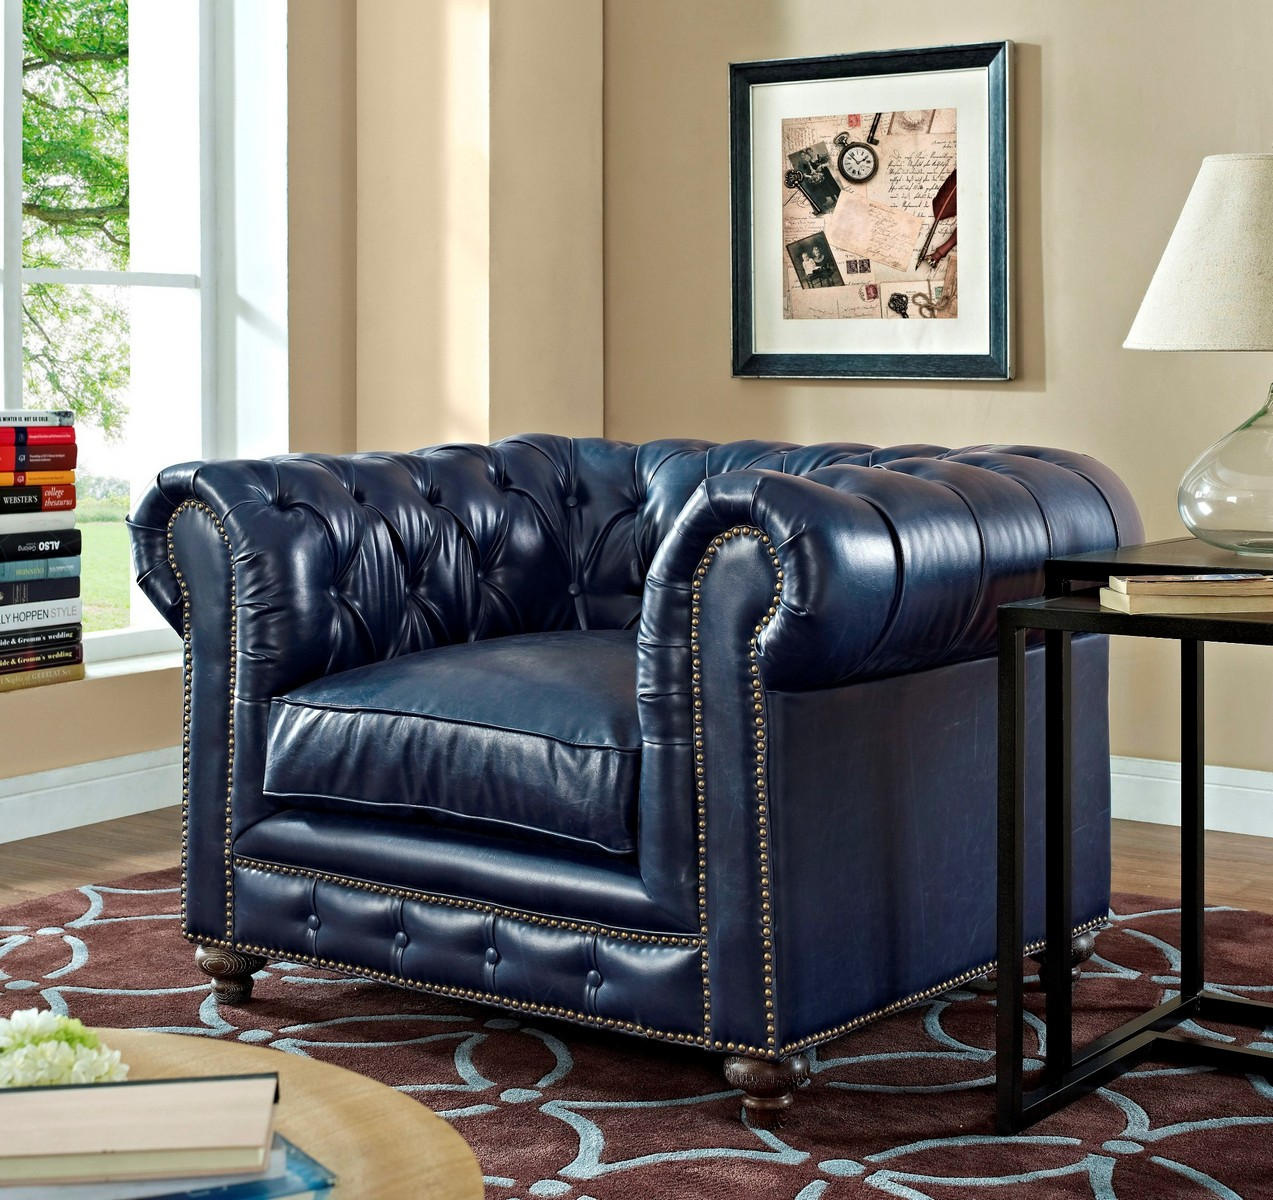 TOV Furniture Durango Rustic Blue Leather Club Chair